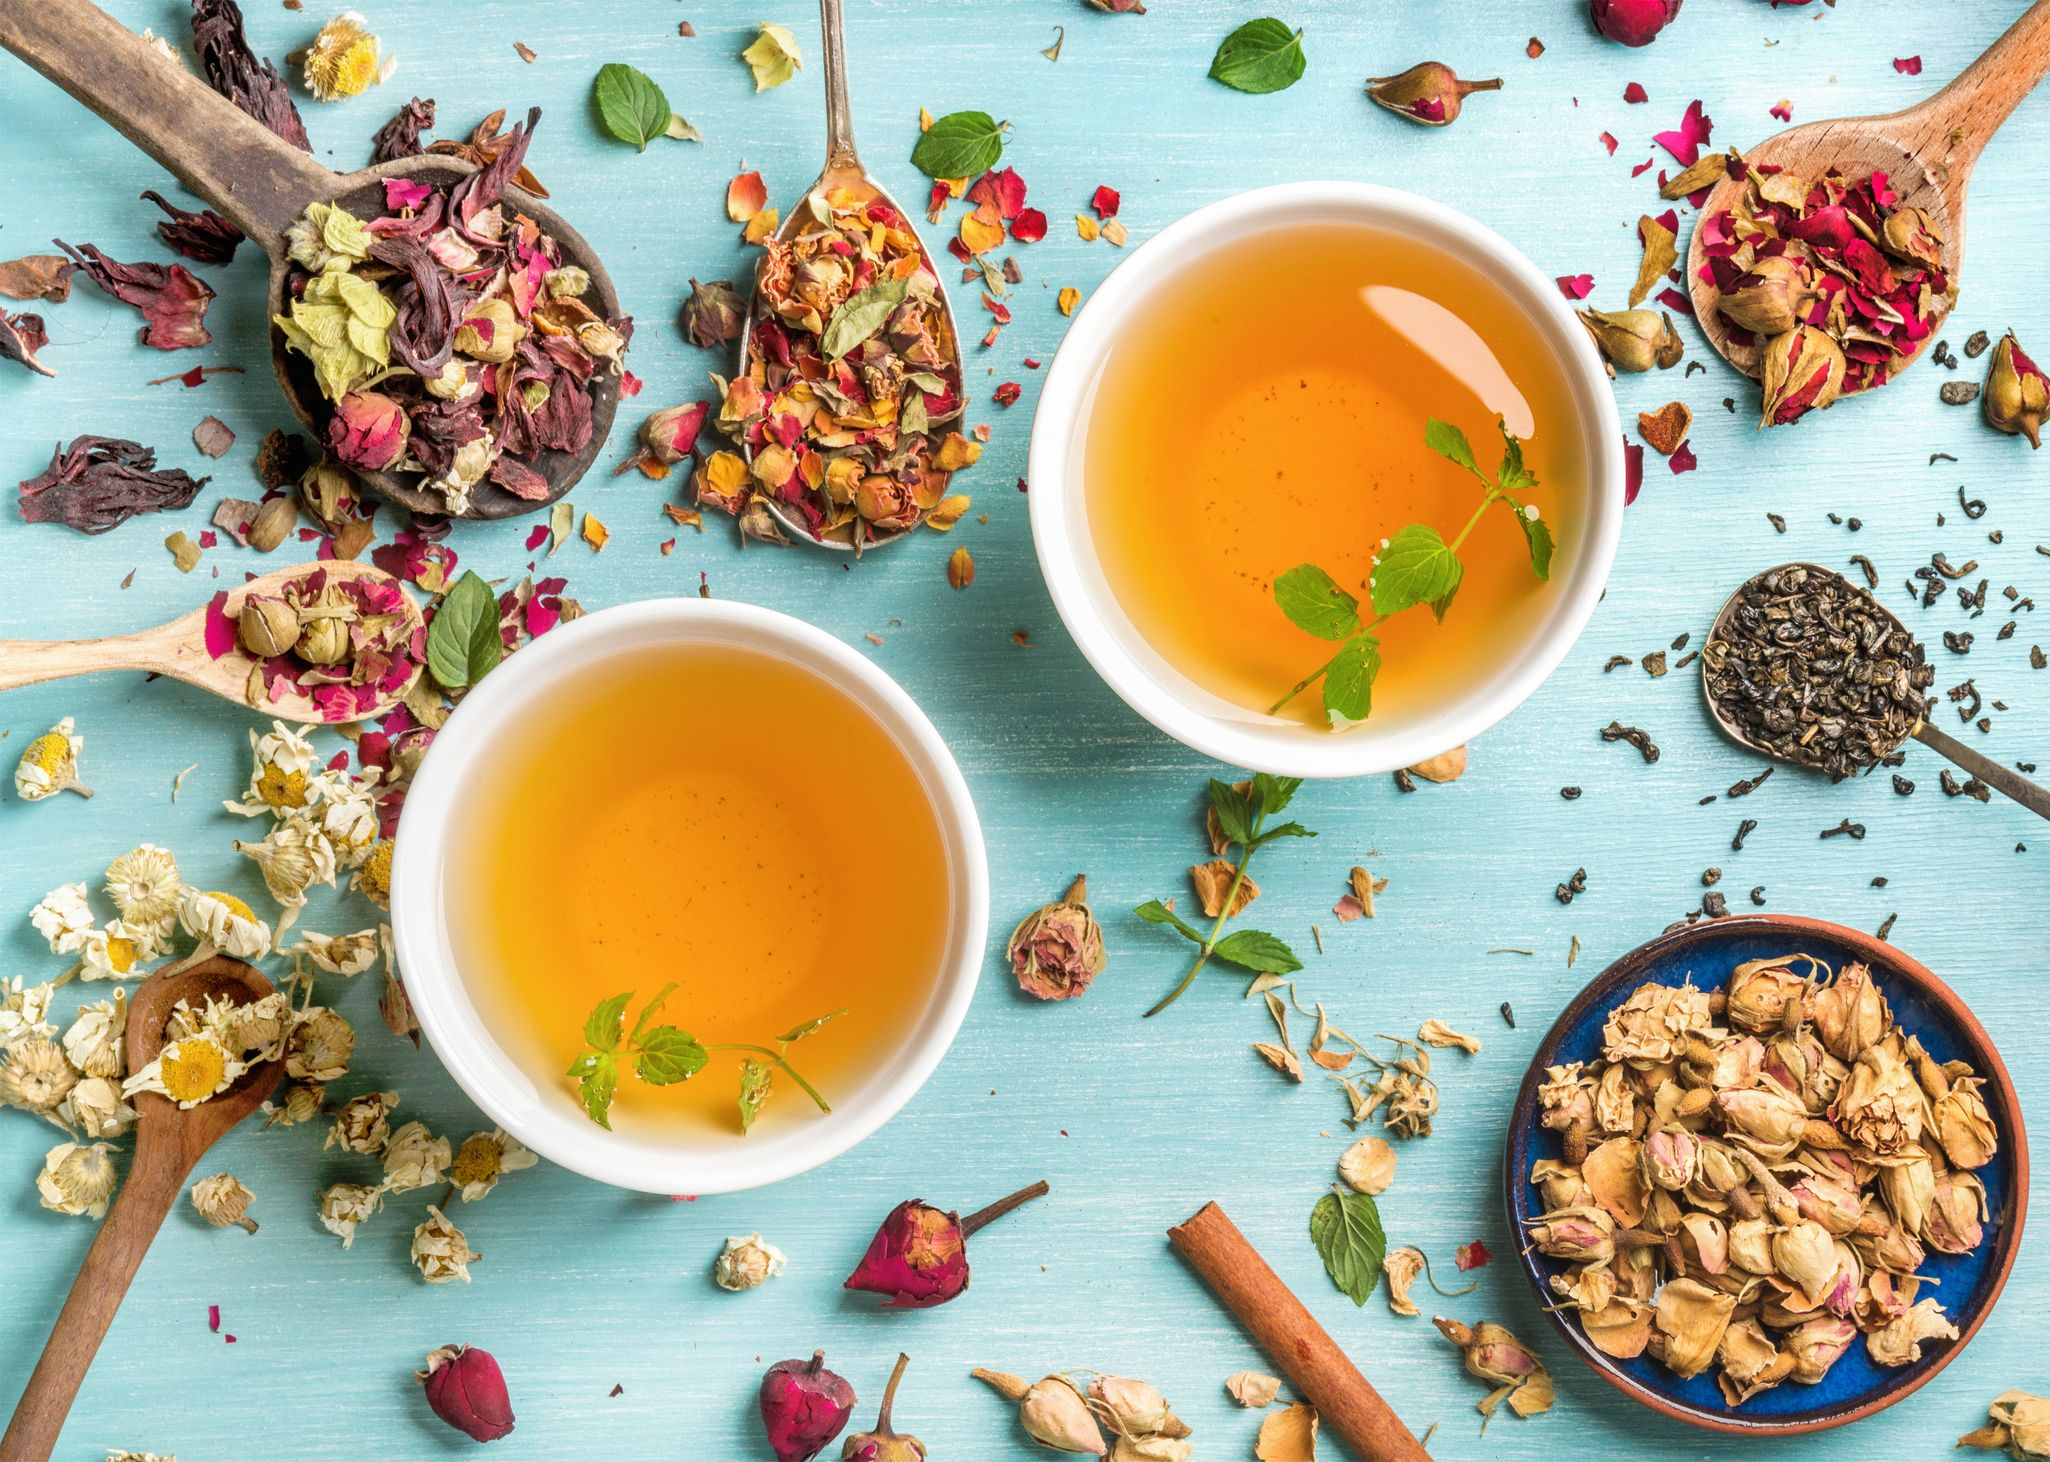 Top Best Tea For Weight Loss and Bloating